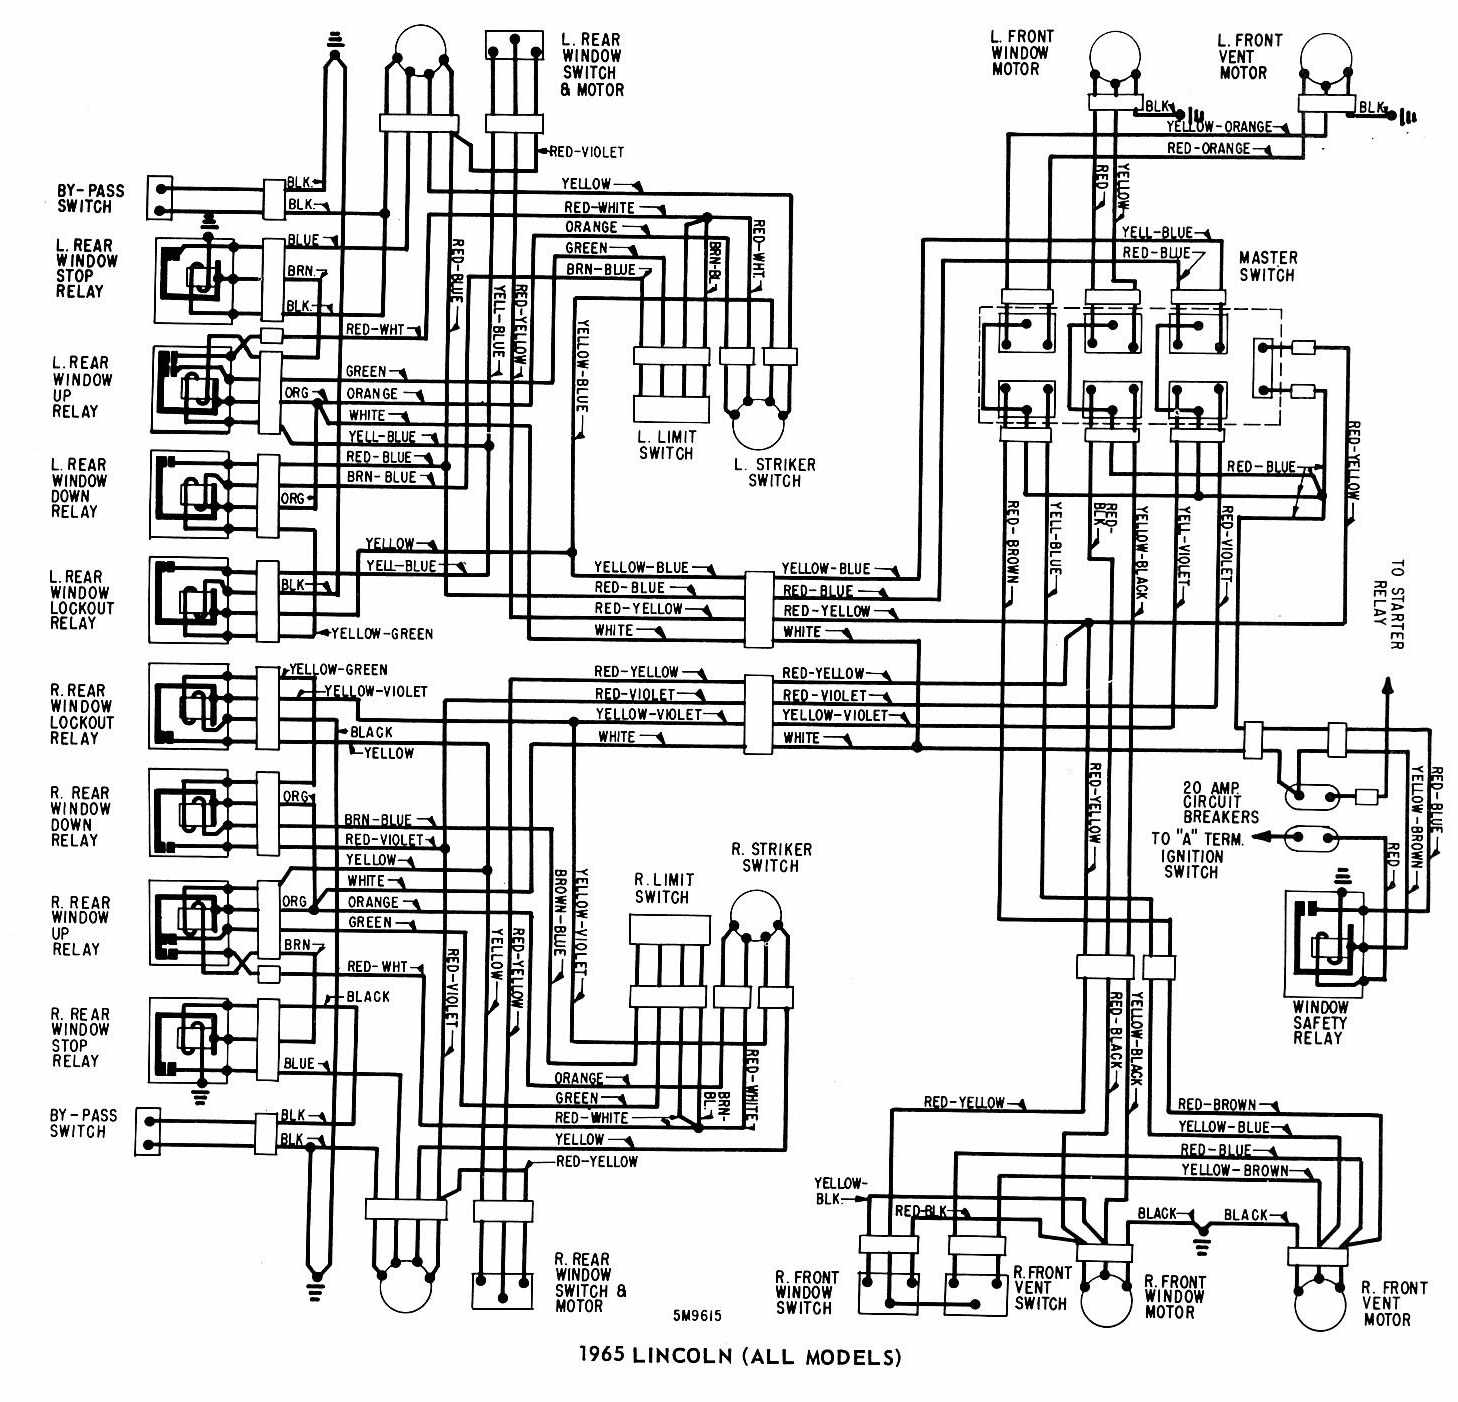 hight resolution of 1962 lincoln wiring diagram free wiring diagram for you u2022 eurodrive wiring diagrams 1960 lincoln wiring diagram